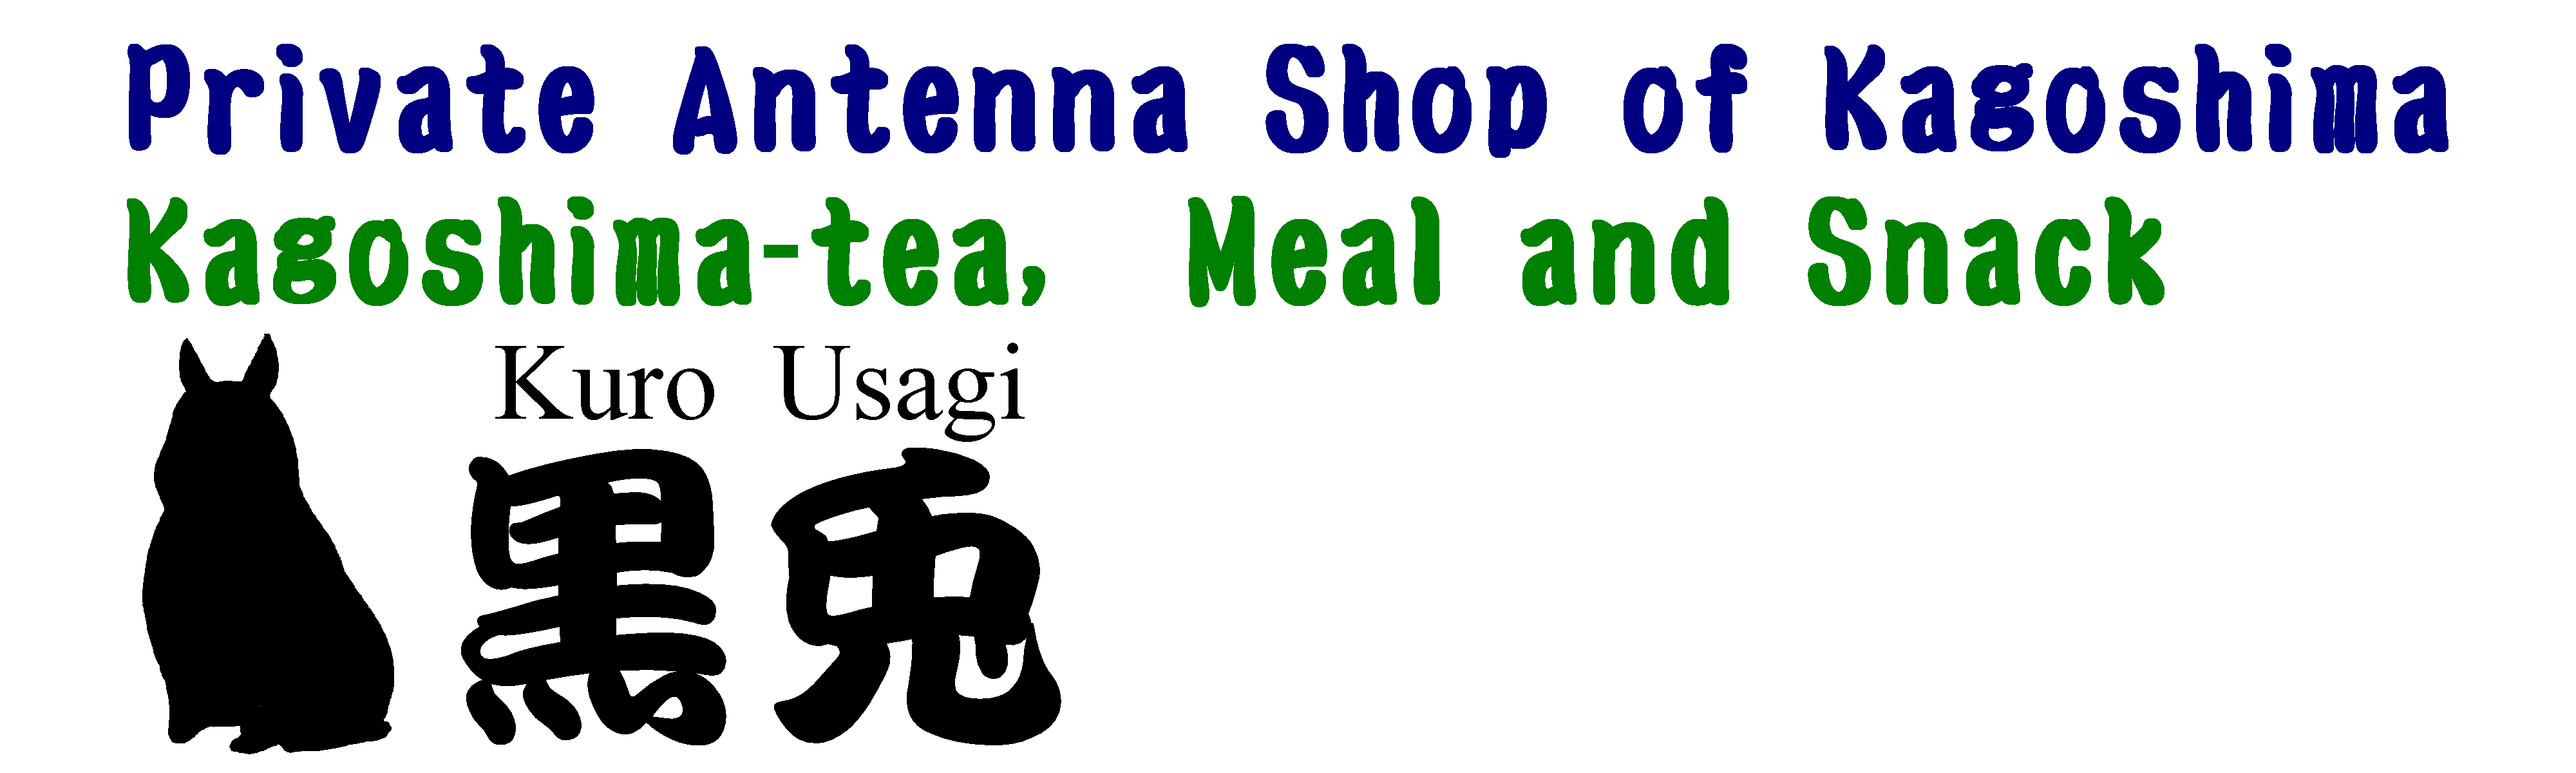 Private Antenna Shop of Kagoshima : Kagoshima-tea, Meal and Snack : Kuro-Usagi